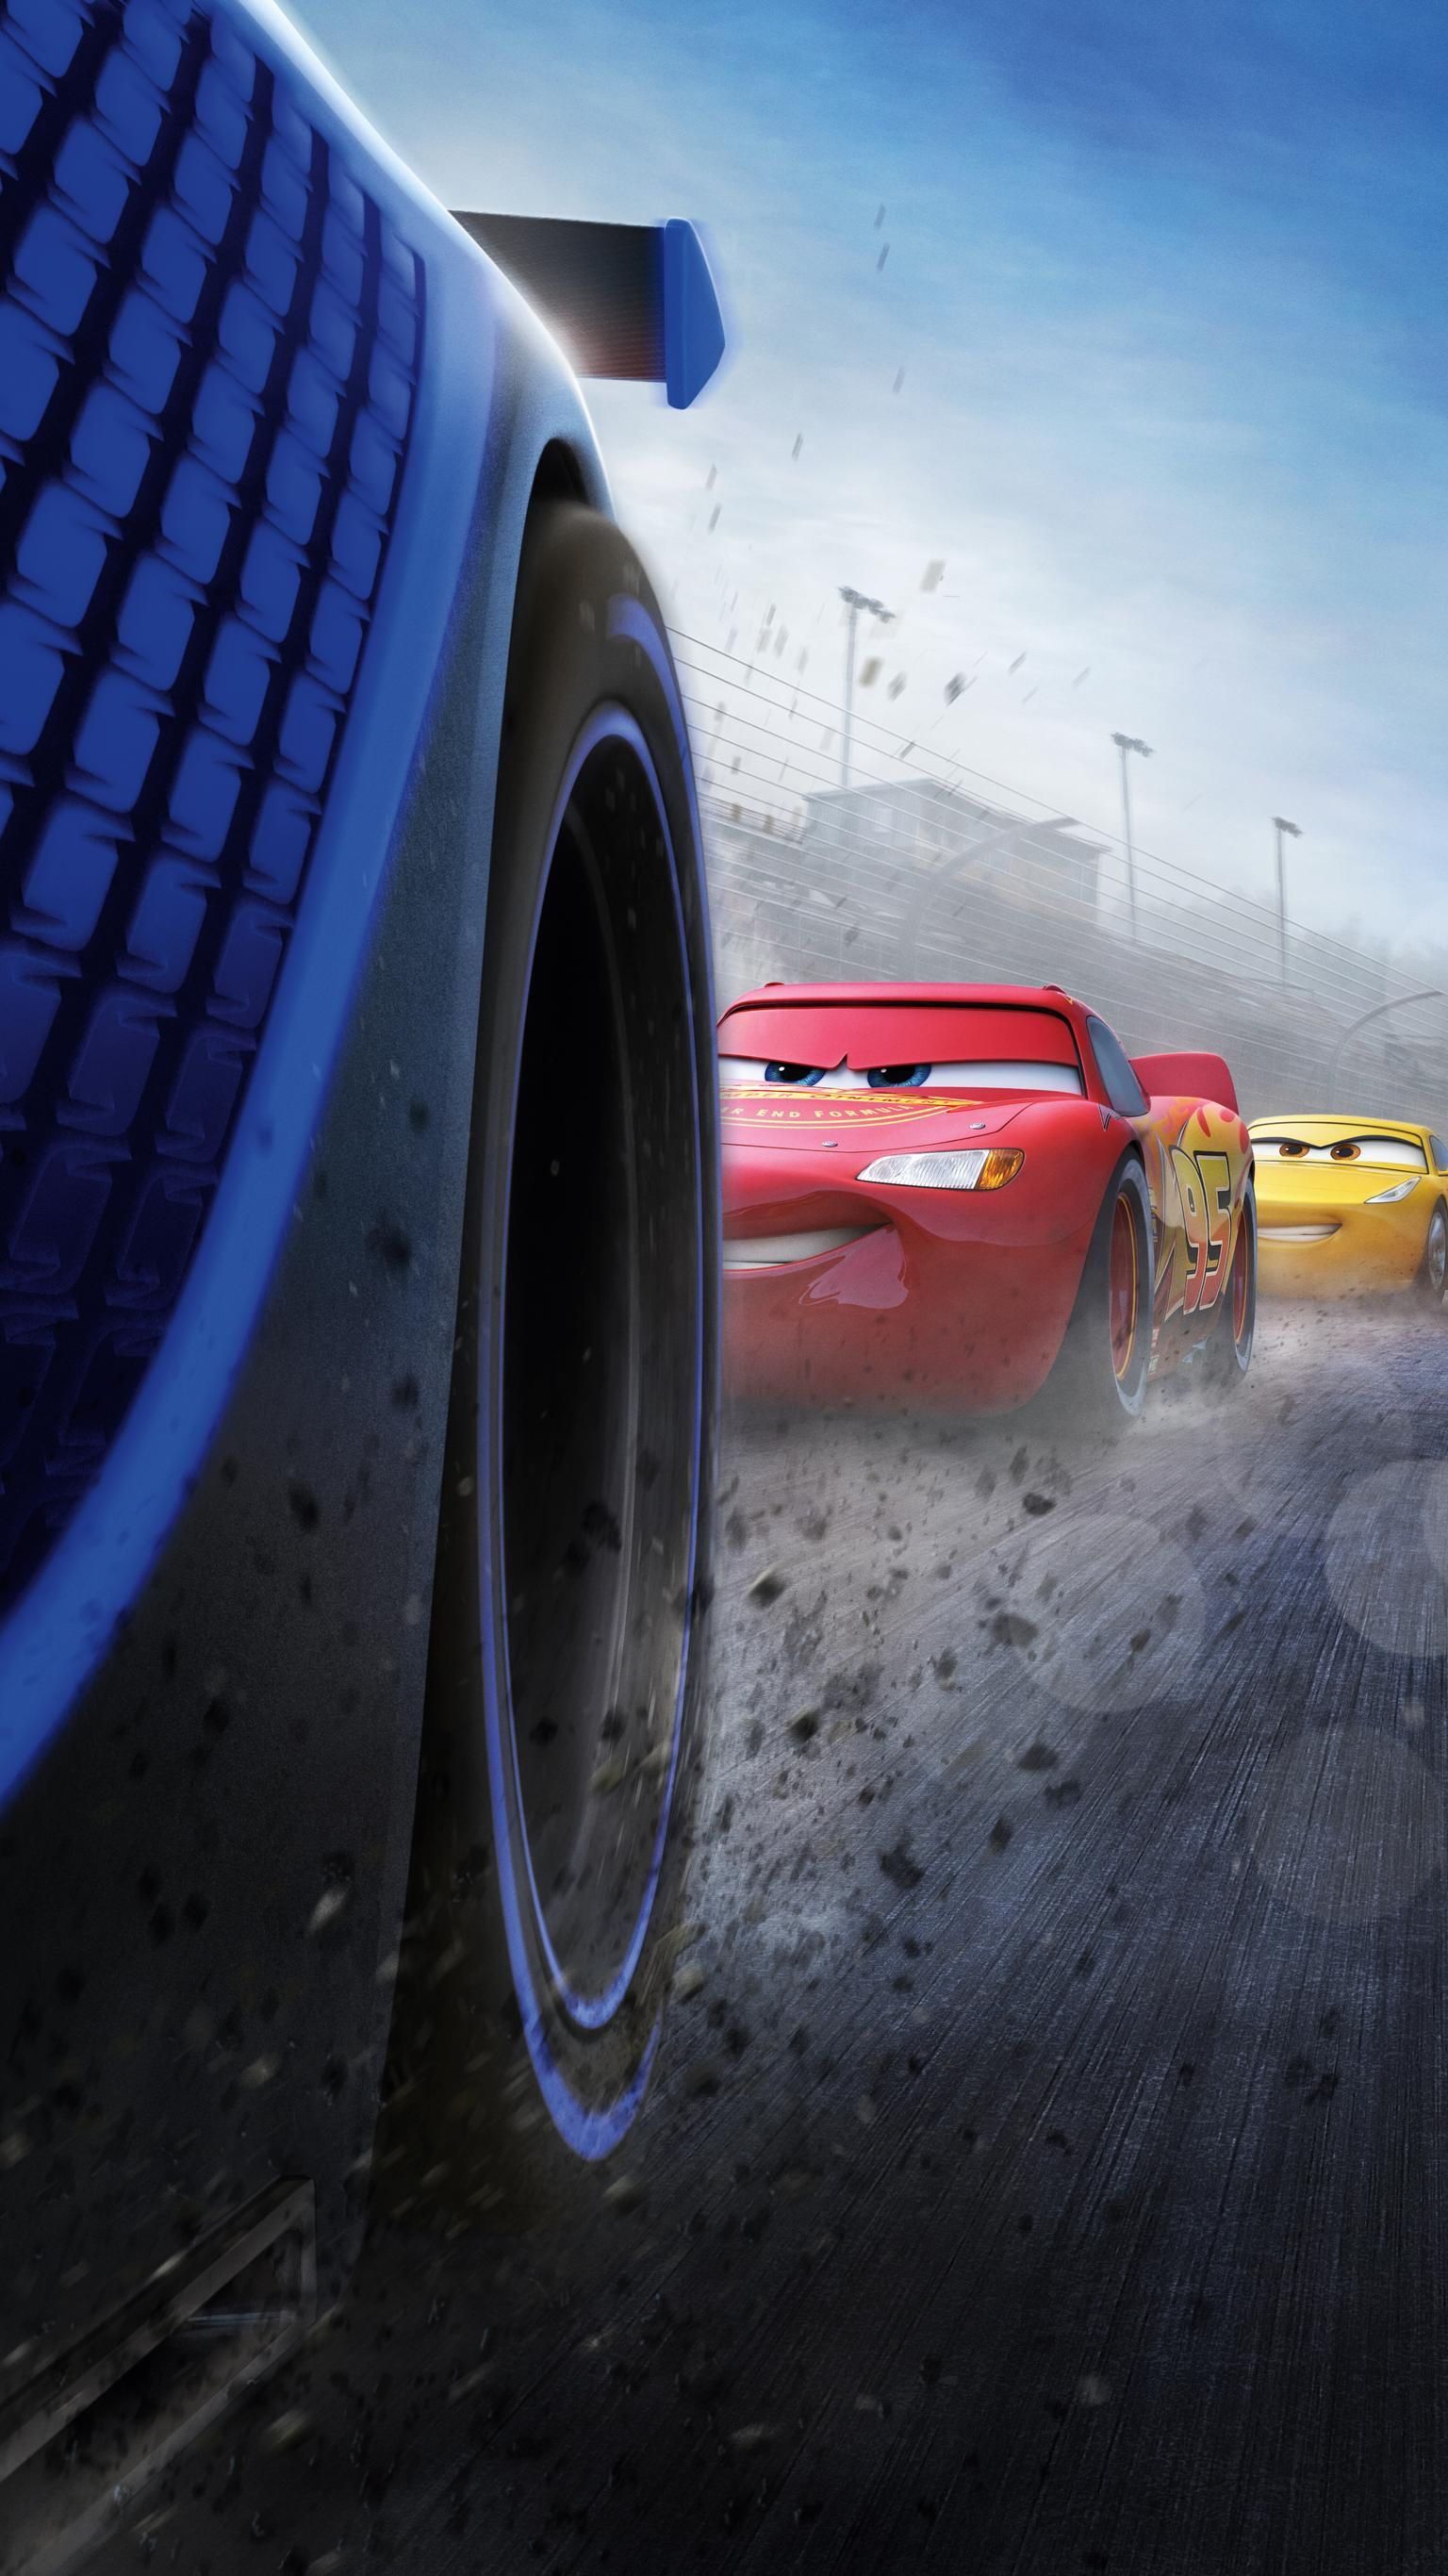 Cars 3 2017 Phone Wallpaper Fondos De Pantalla De Coches